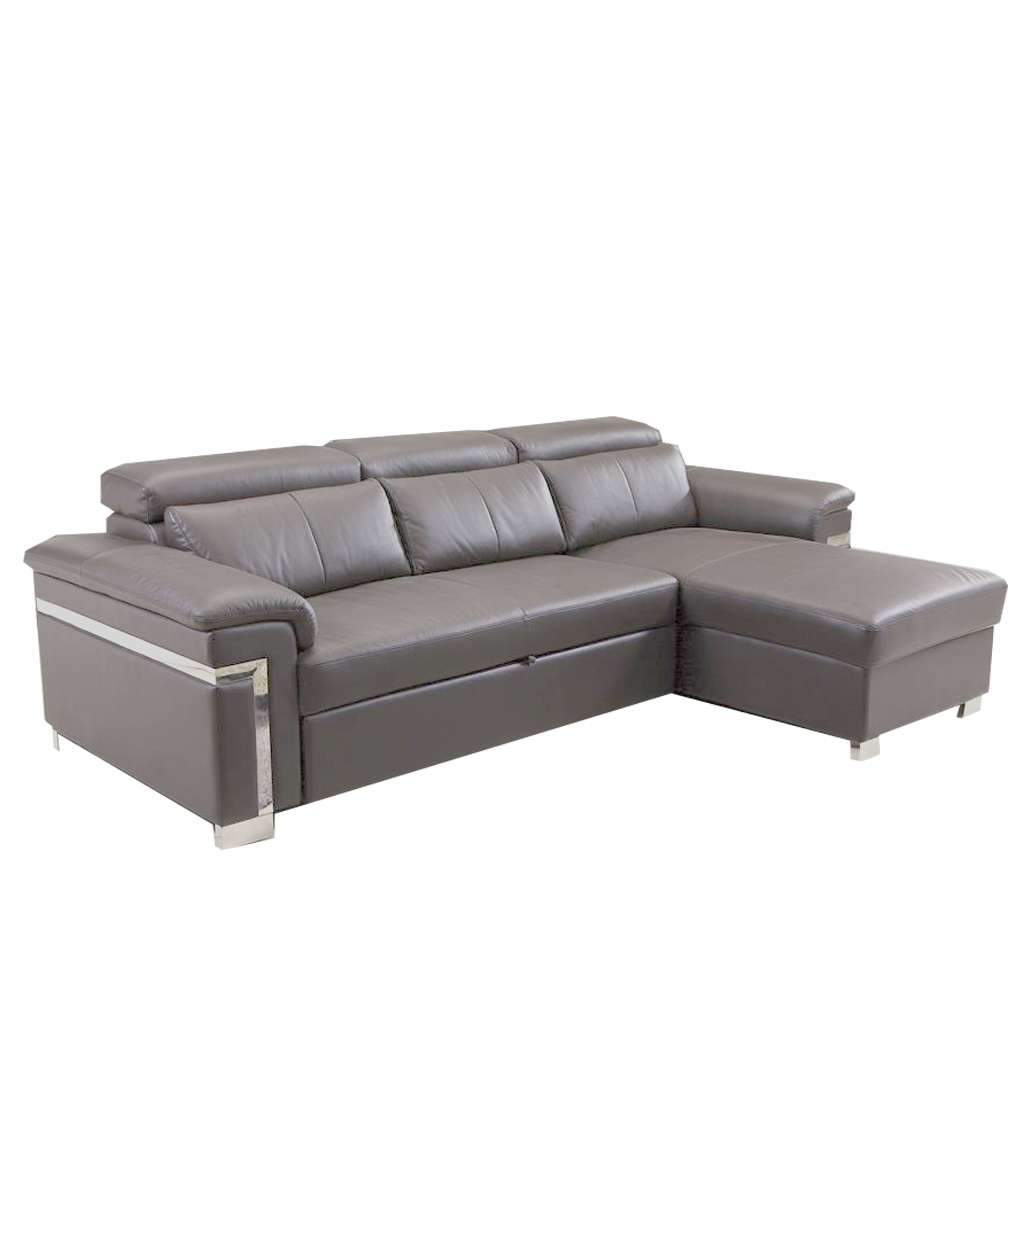 Sofa Berlin Berlin Sectional Bed